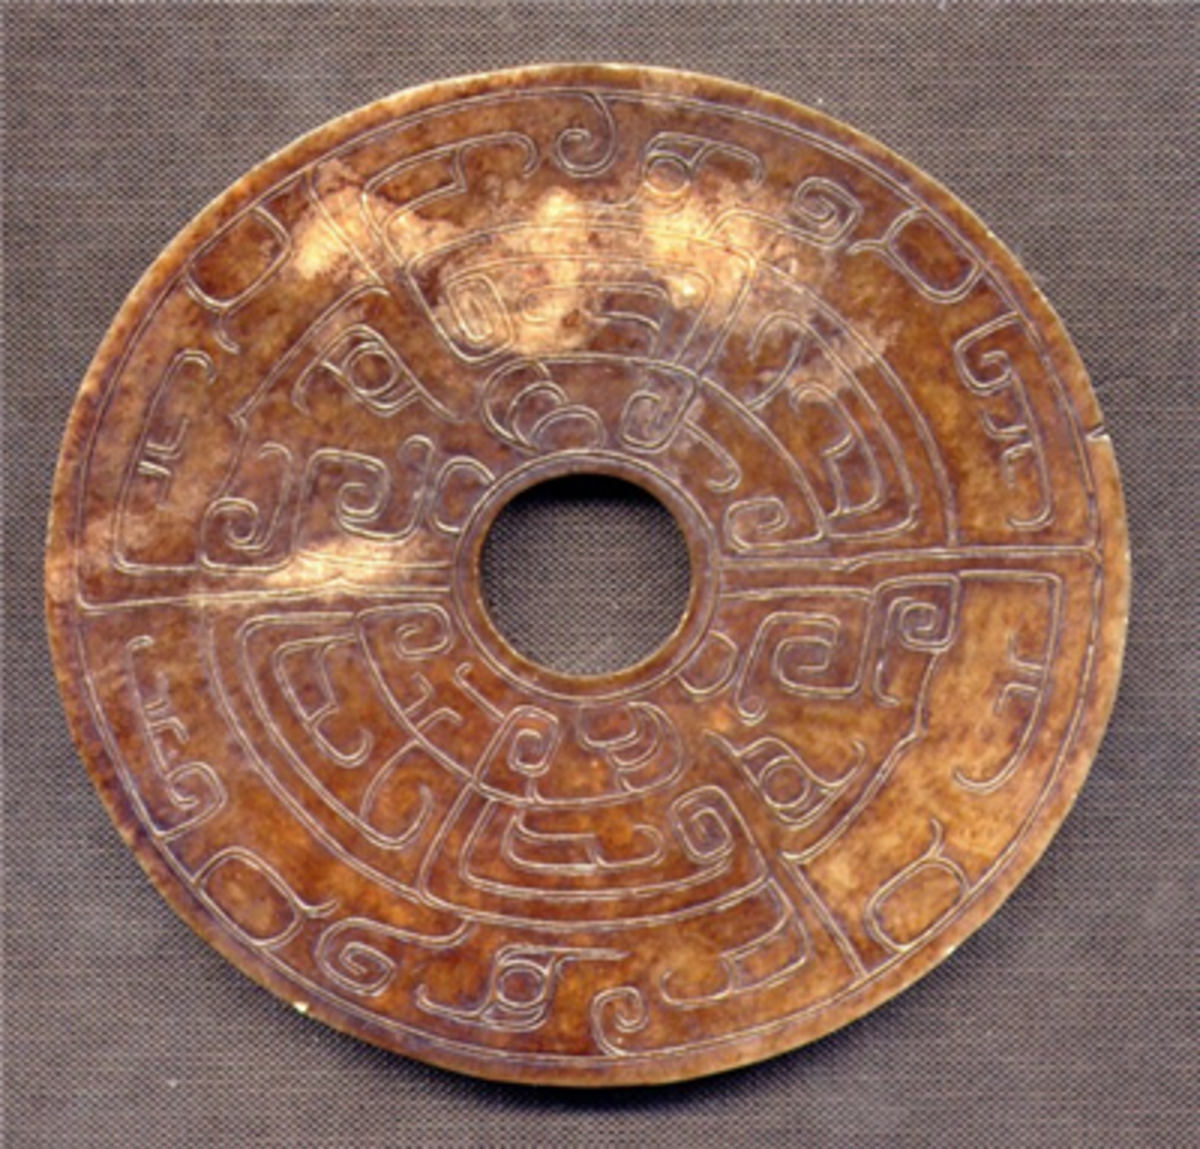 Artifacts from the Shang Dynasty